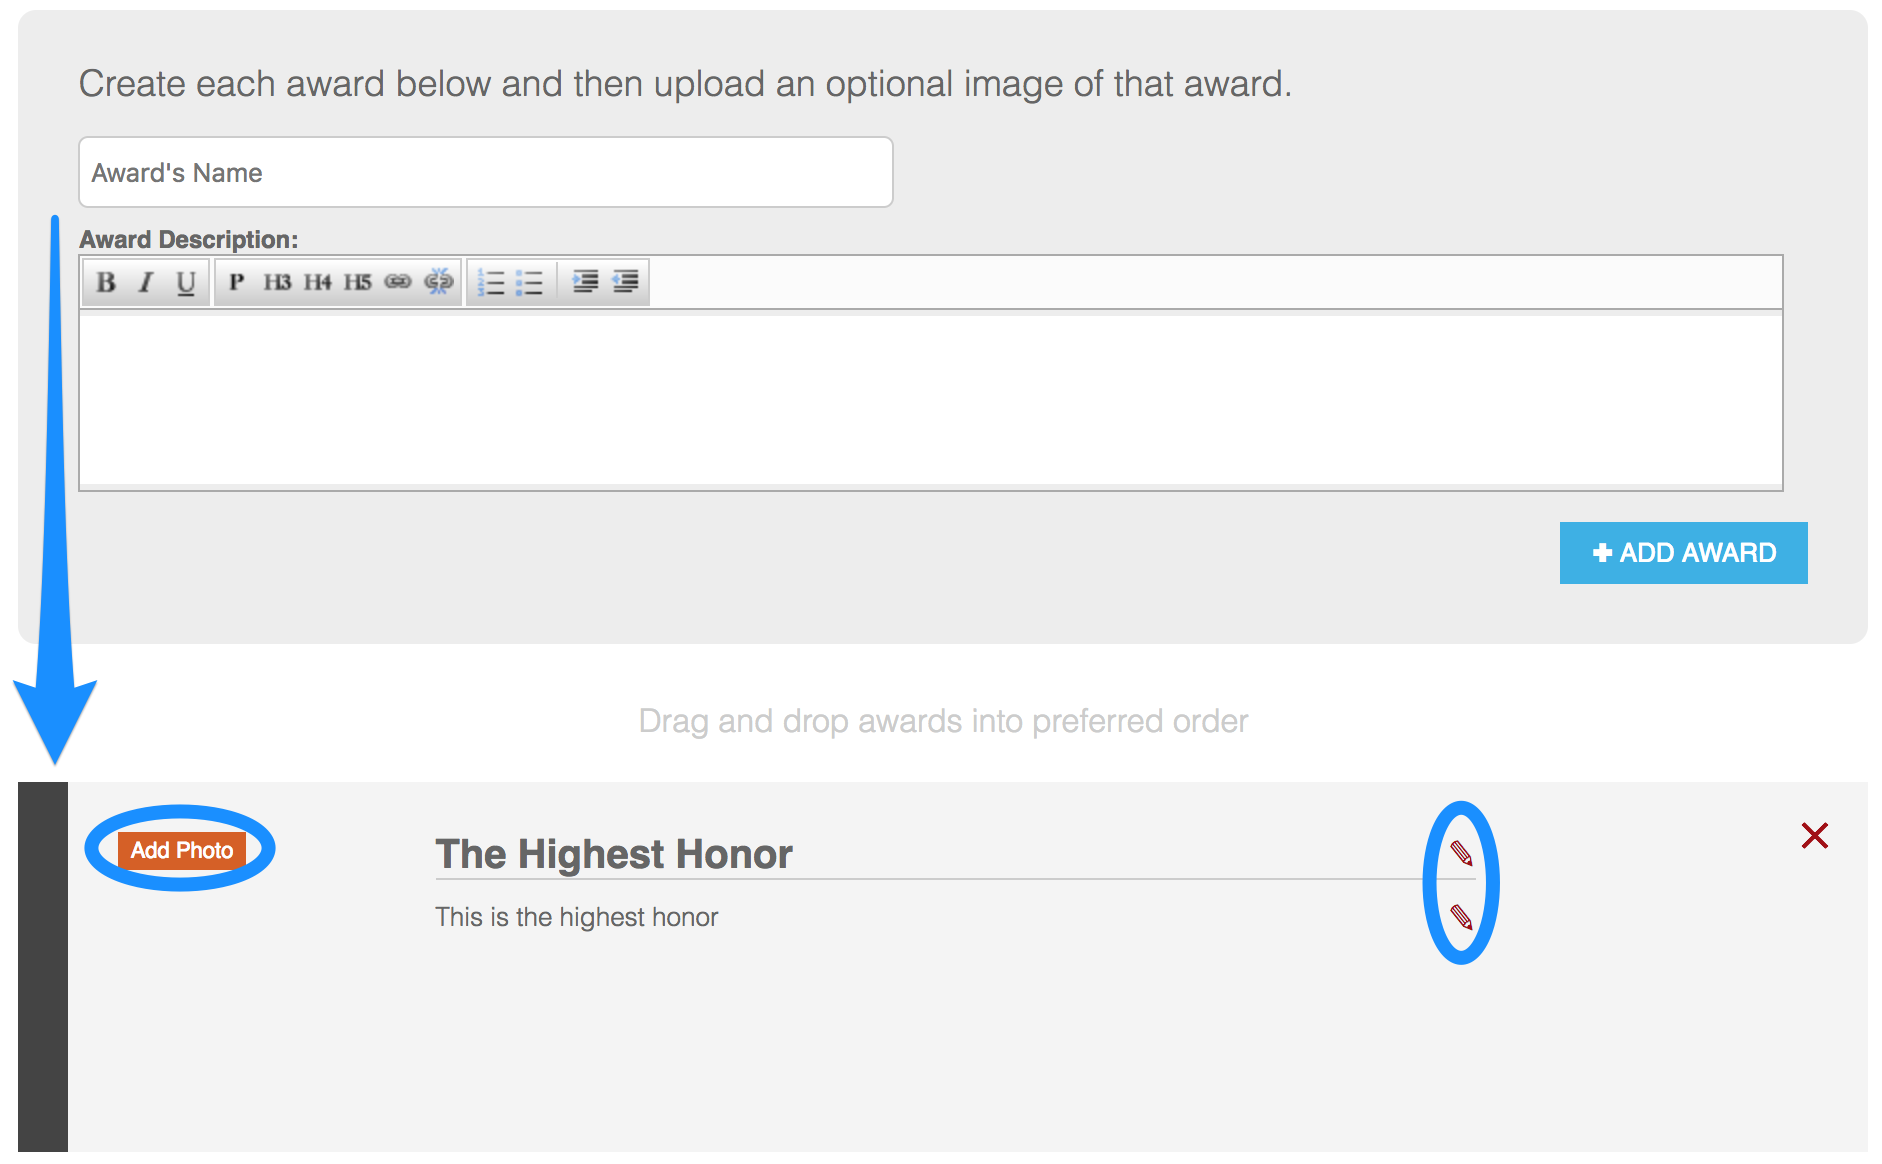 Awards_and_Honors.png